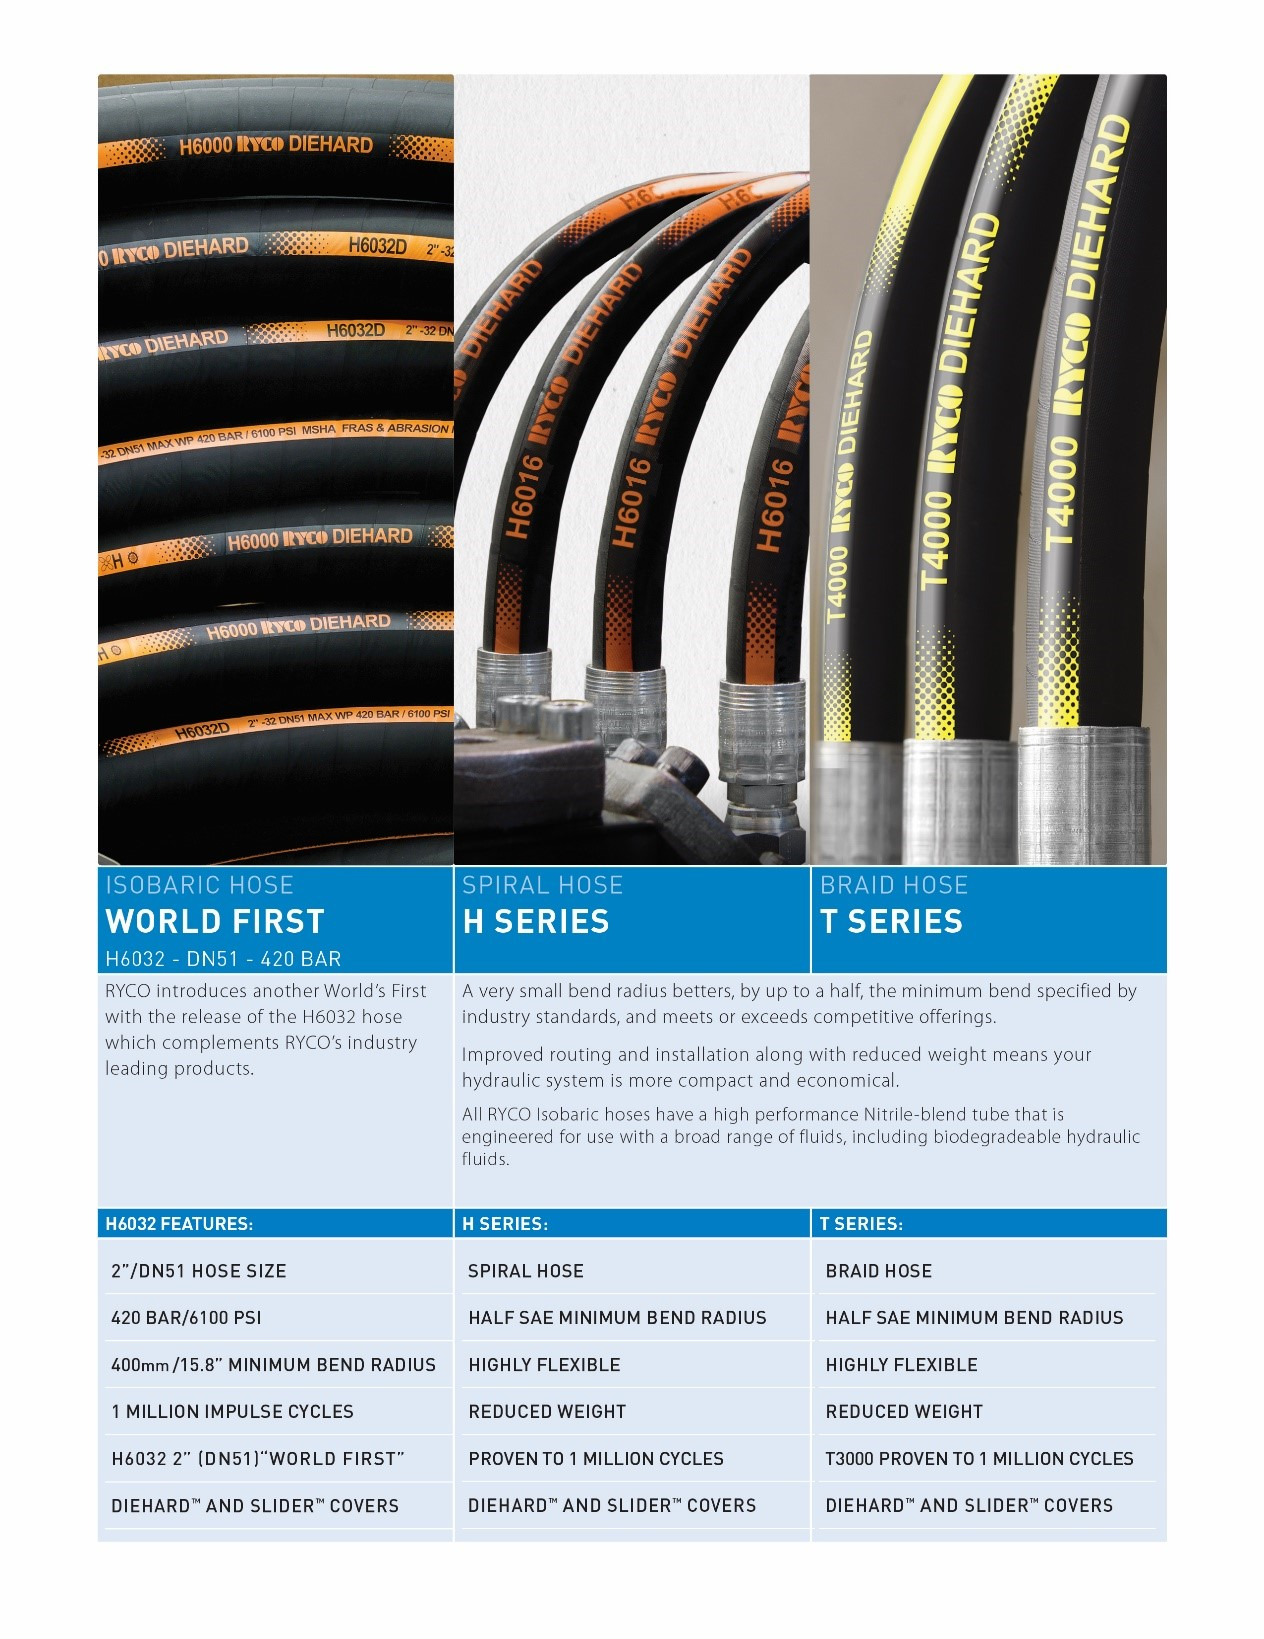 isobaric hoses